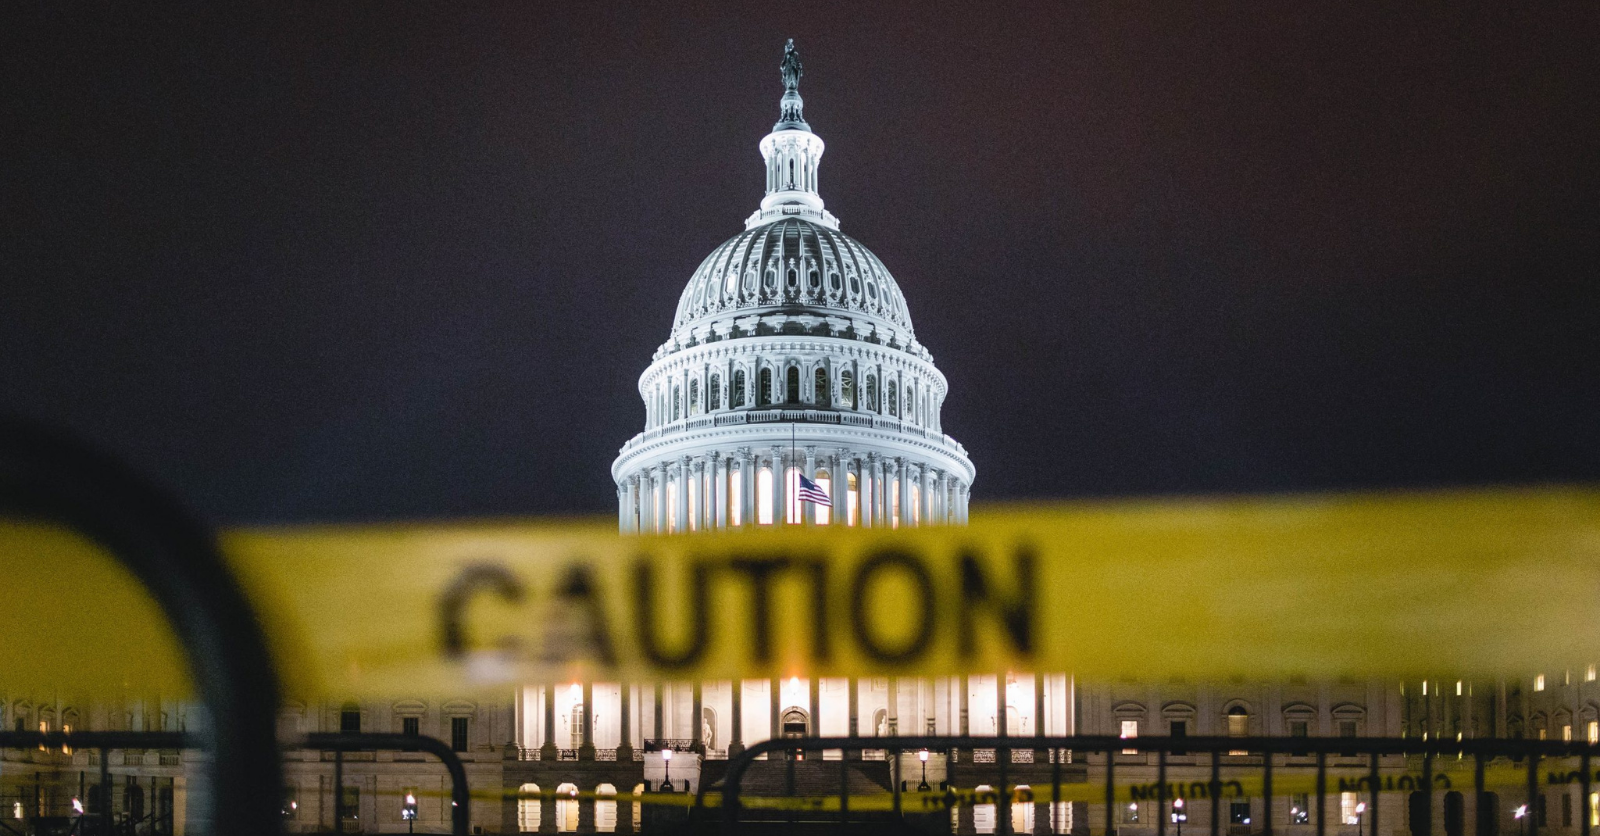 Croatan Institute President Condemns the Attack on the Capitol